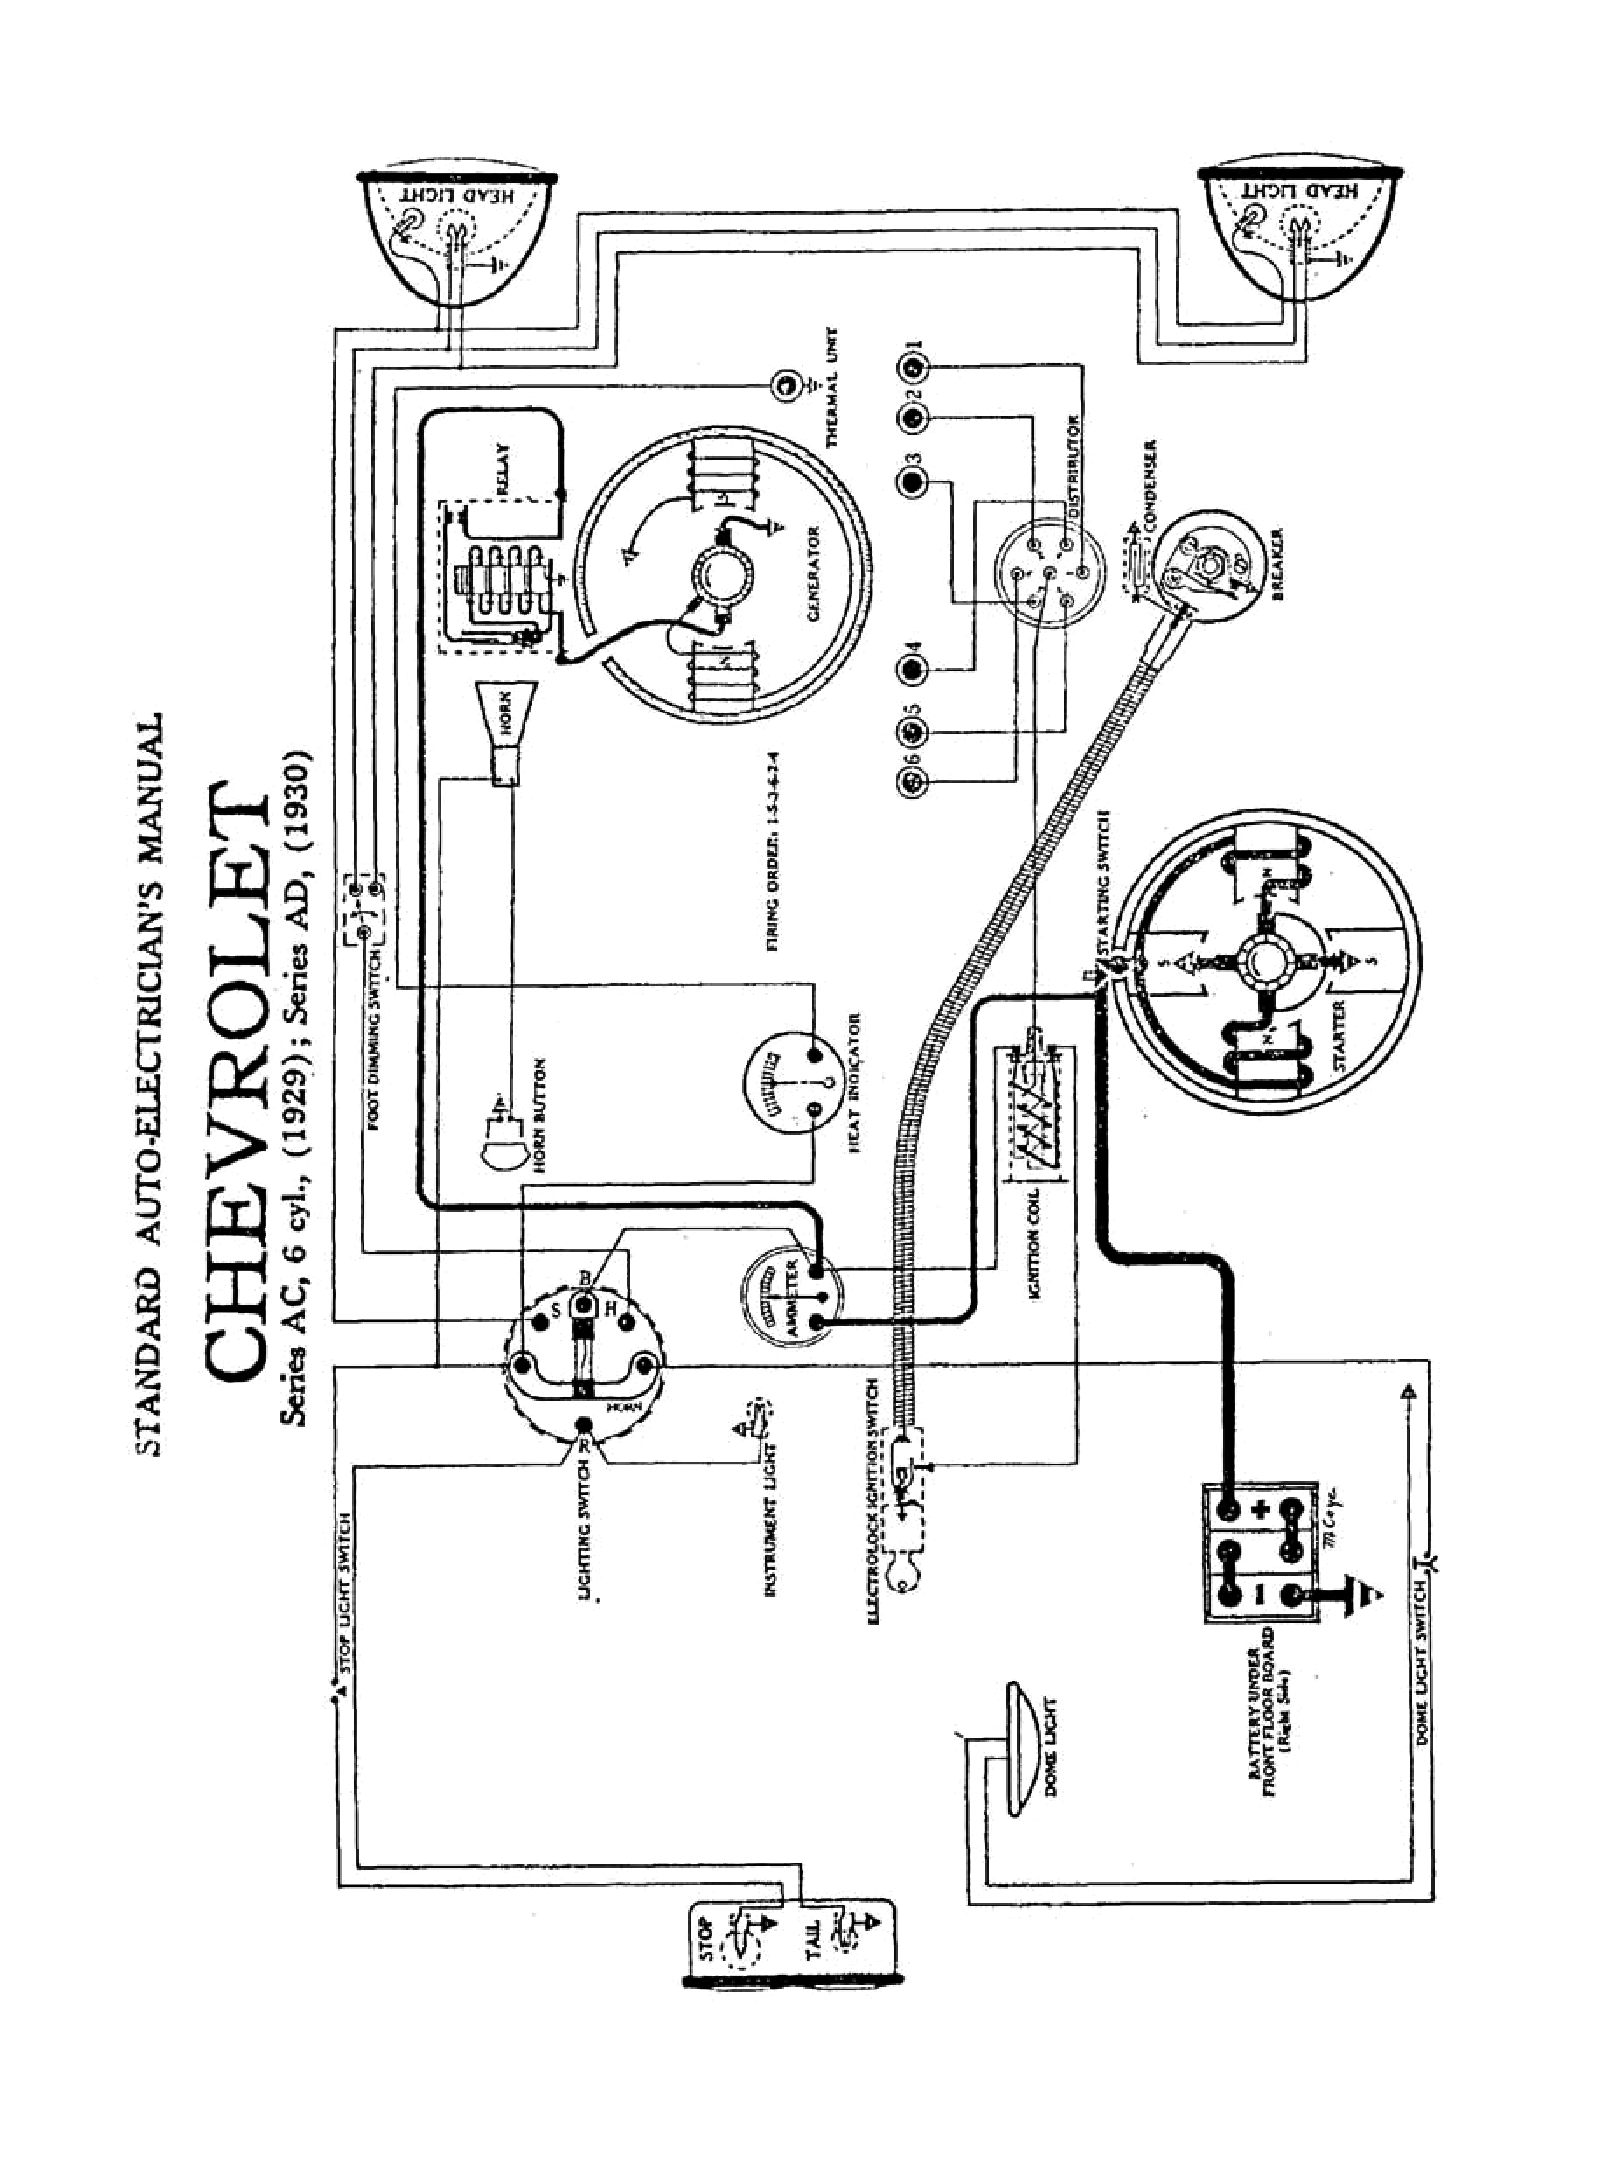 Chevy Wiring Diagrams Nissan Firing Order Diagram 1929 Series Ac Model